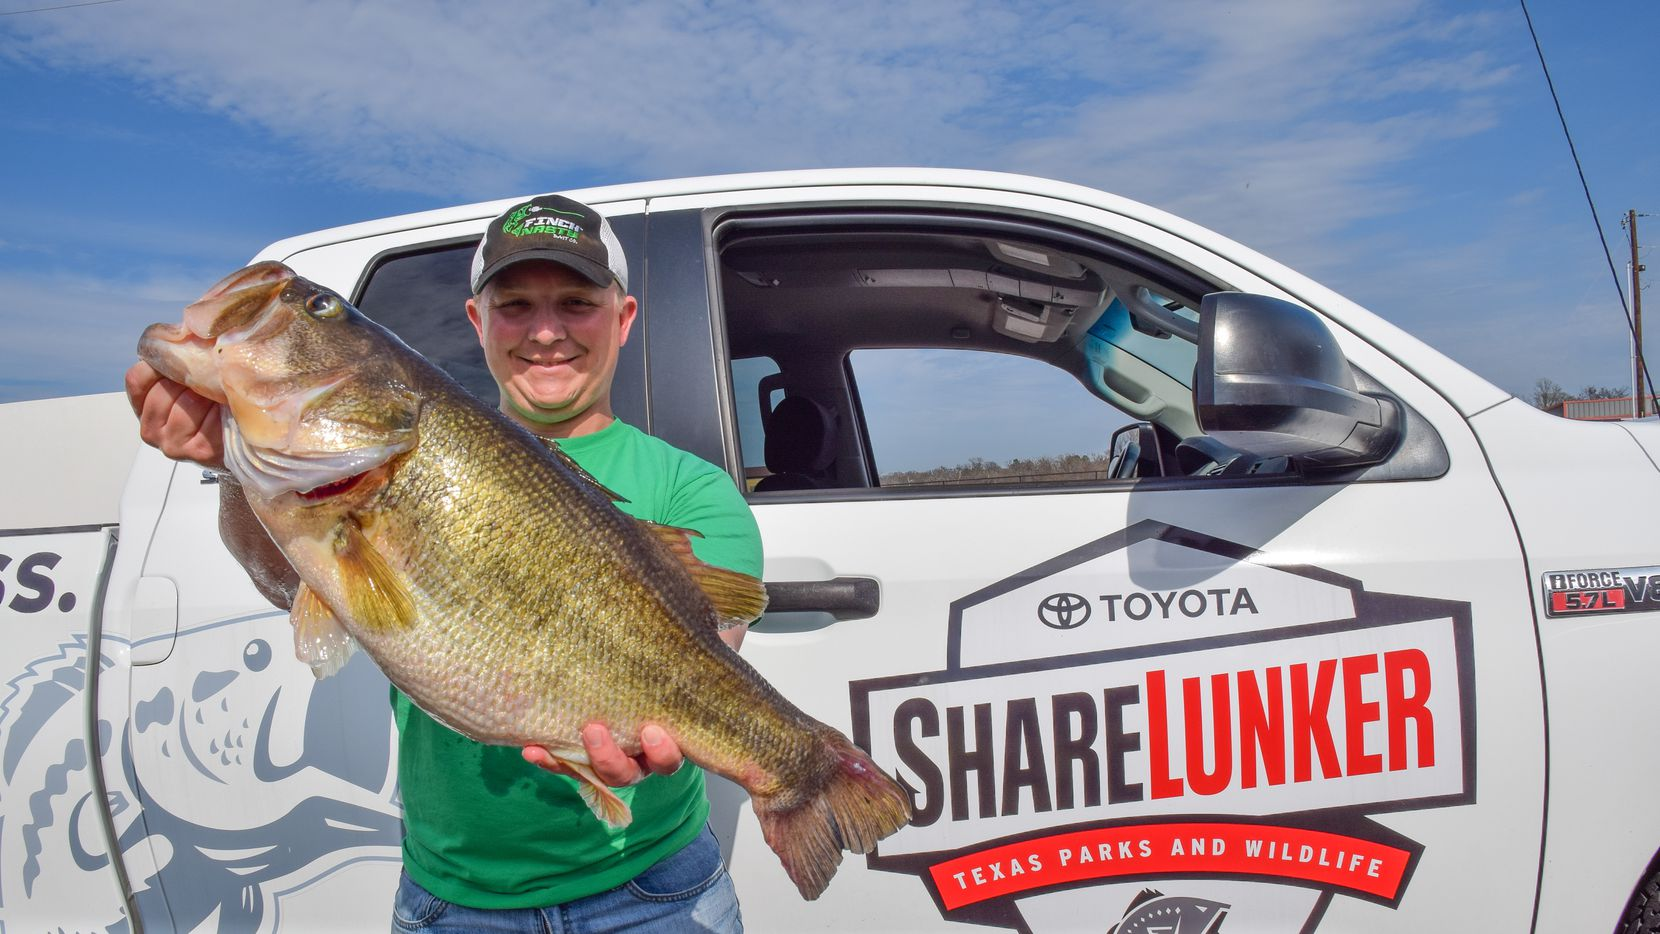 The Toyota ShareLunker program launched its 34th season on Jan. 1. Anglers who catch fish weighing upward of 13 pounds between now and March 31 can loan the fish to the state for selective breeding.